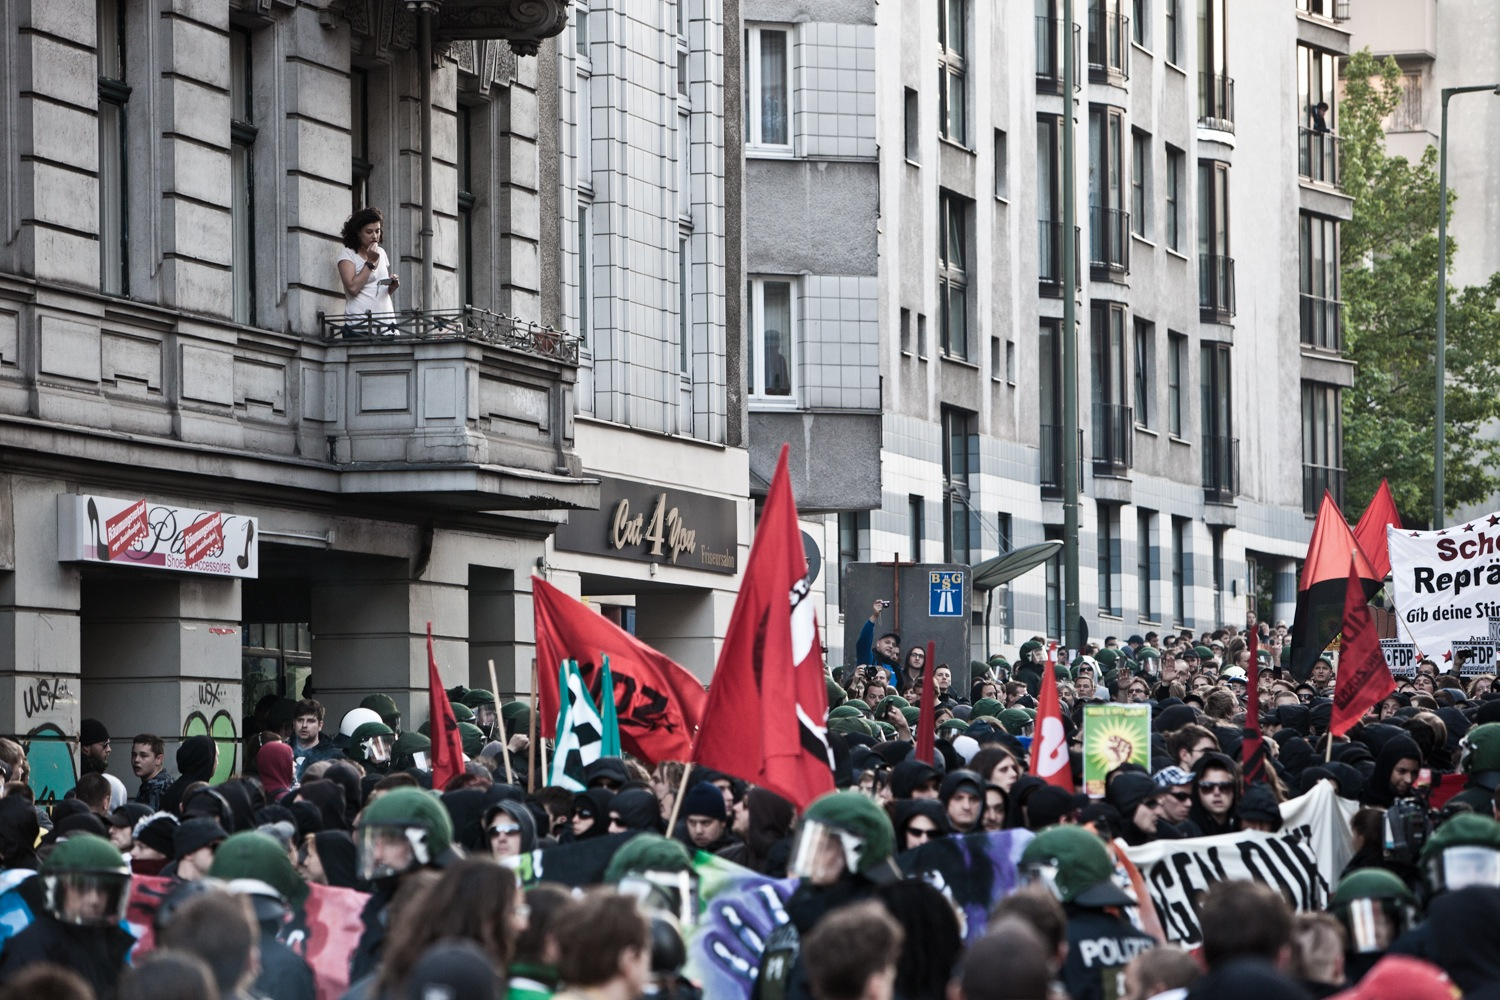 Demo in Kreuzberg